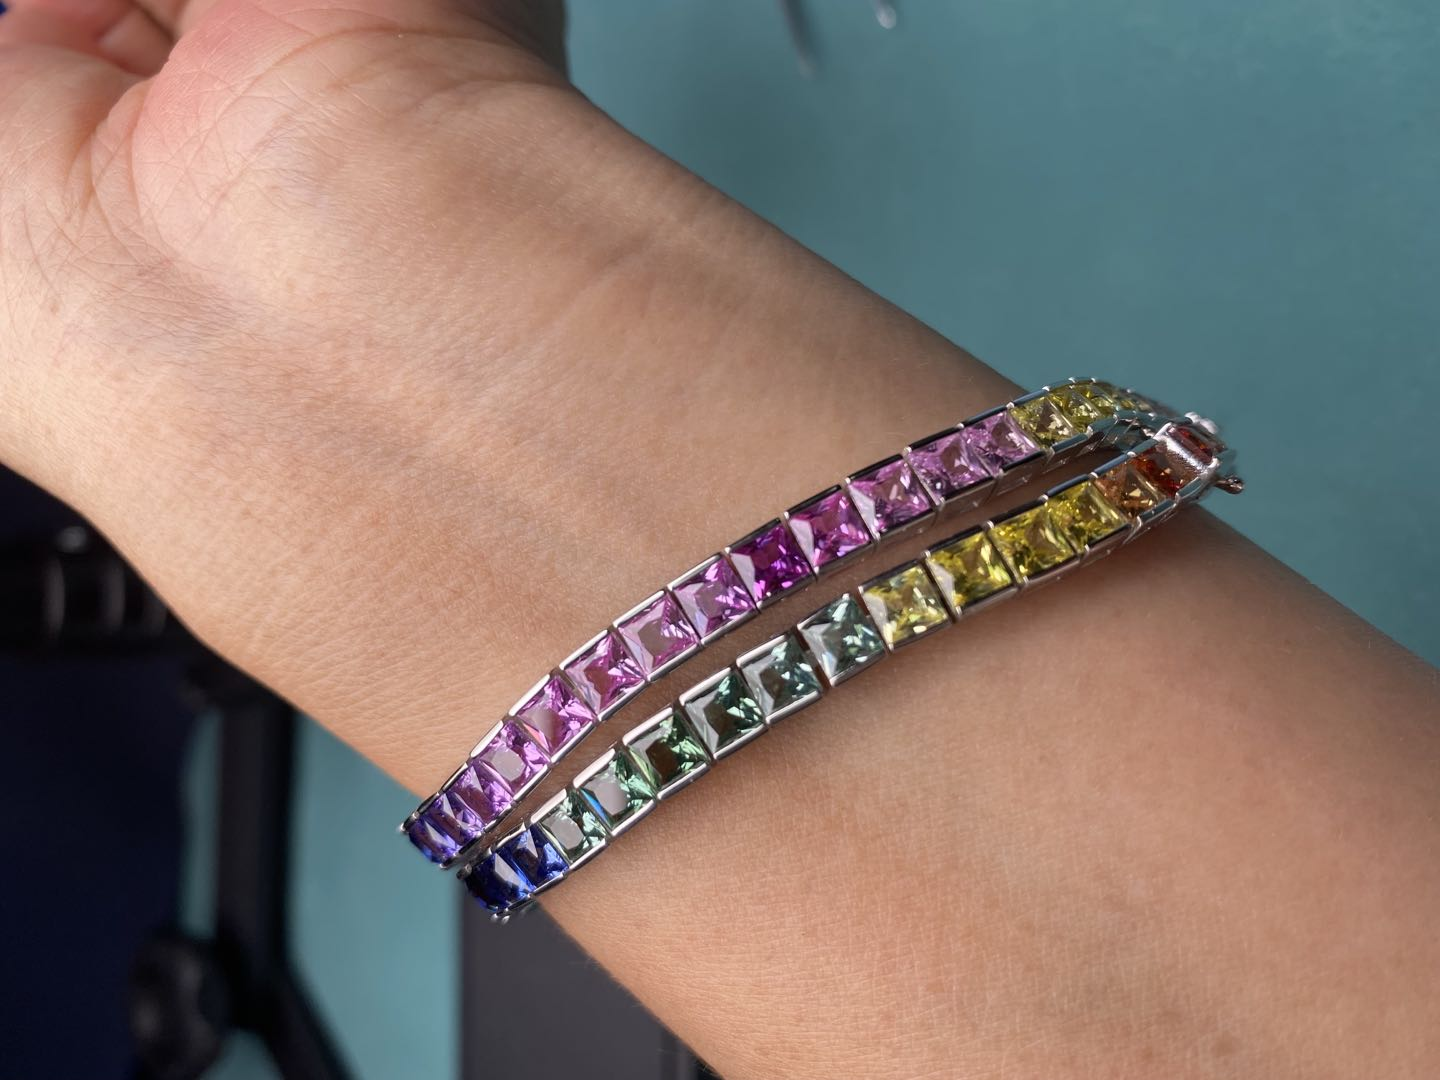 Promo Pirmiana Hot Sale 4x4mm Square Rainbow Sapphire Bracelet Created Gemstone S925 Silver Fashion Jewelry for Christmas Party Gifts